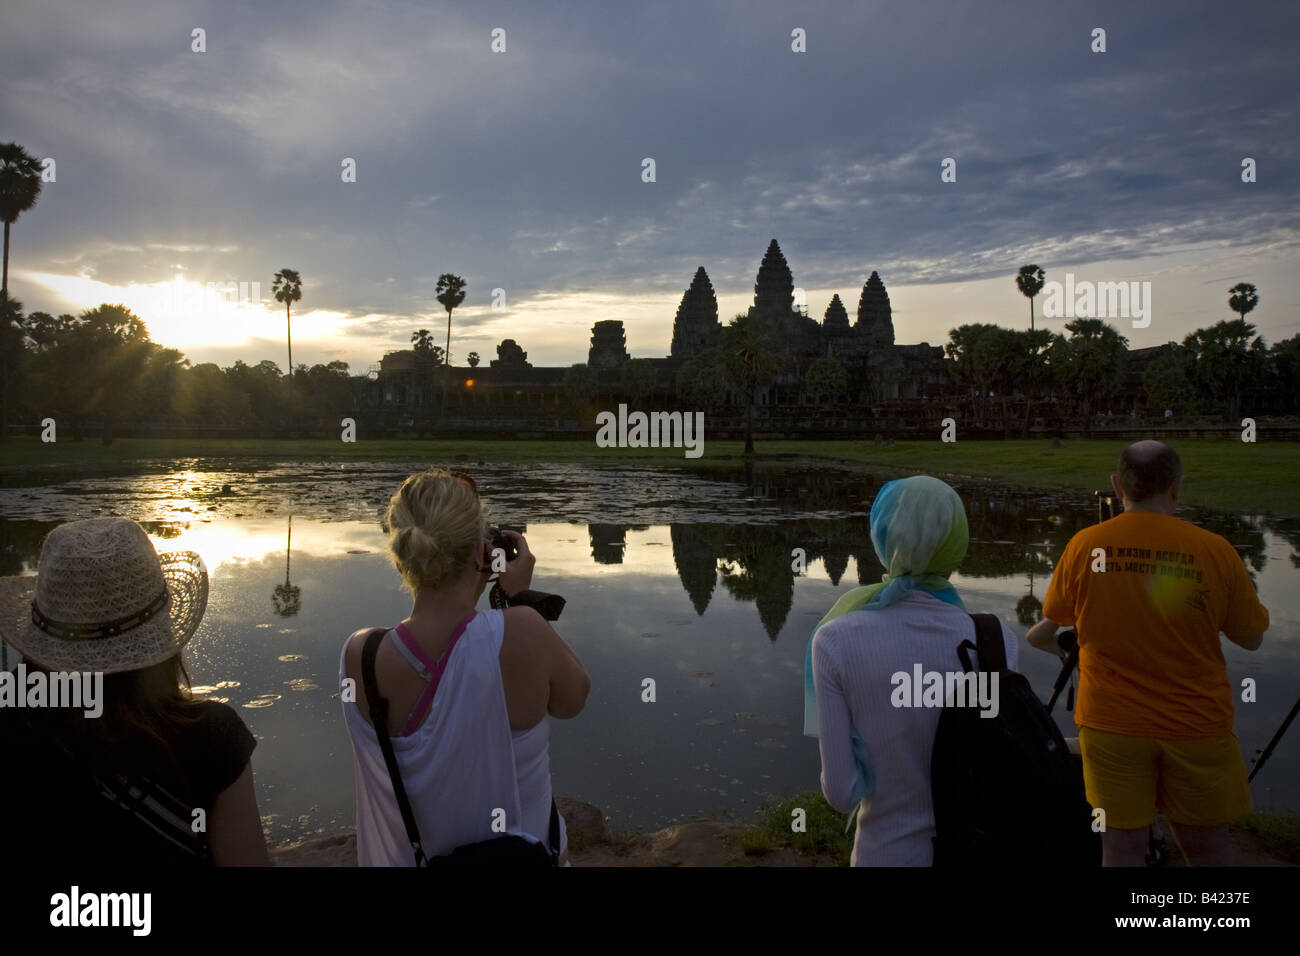 Tourists in Temple of Angkor wat Cambodia - Stock Image